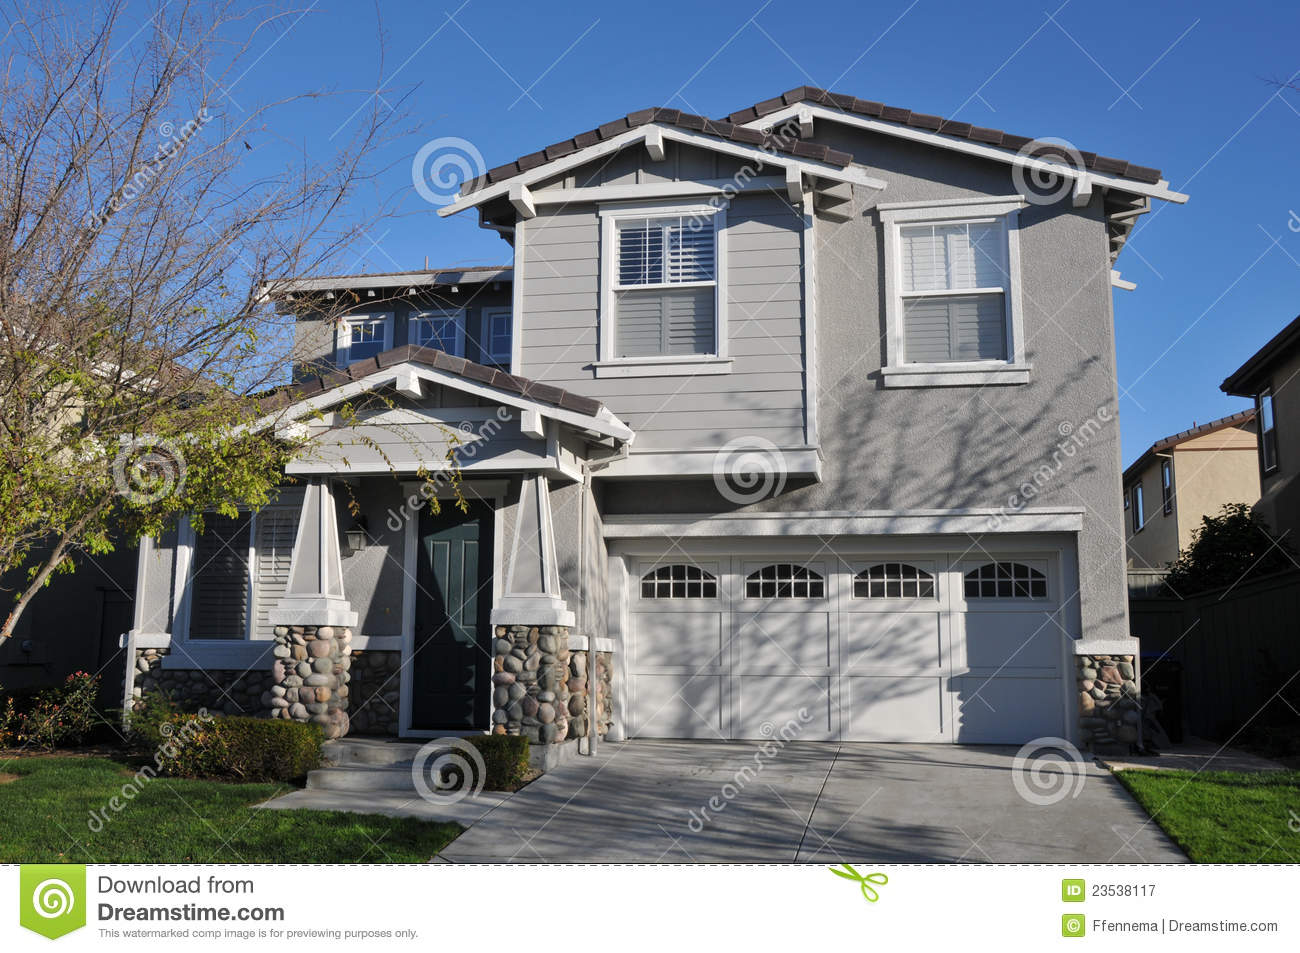 Two Story Single Family House With Driveway Royalty Free Stock Photography Image 23538117